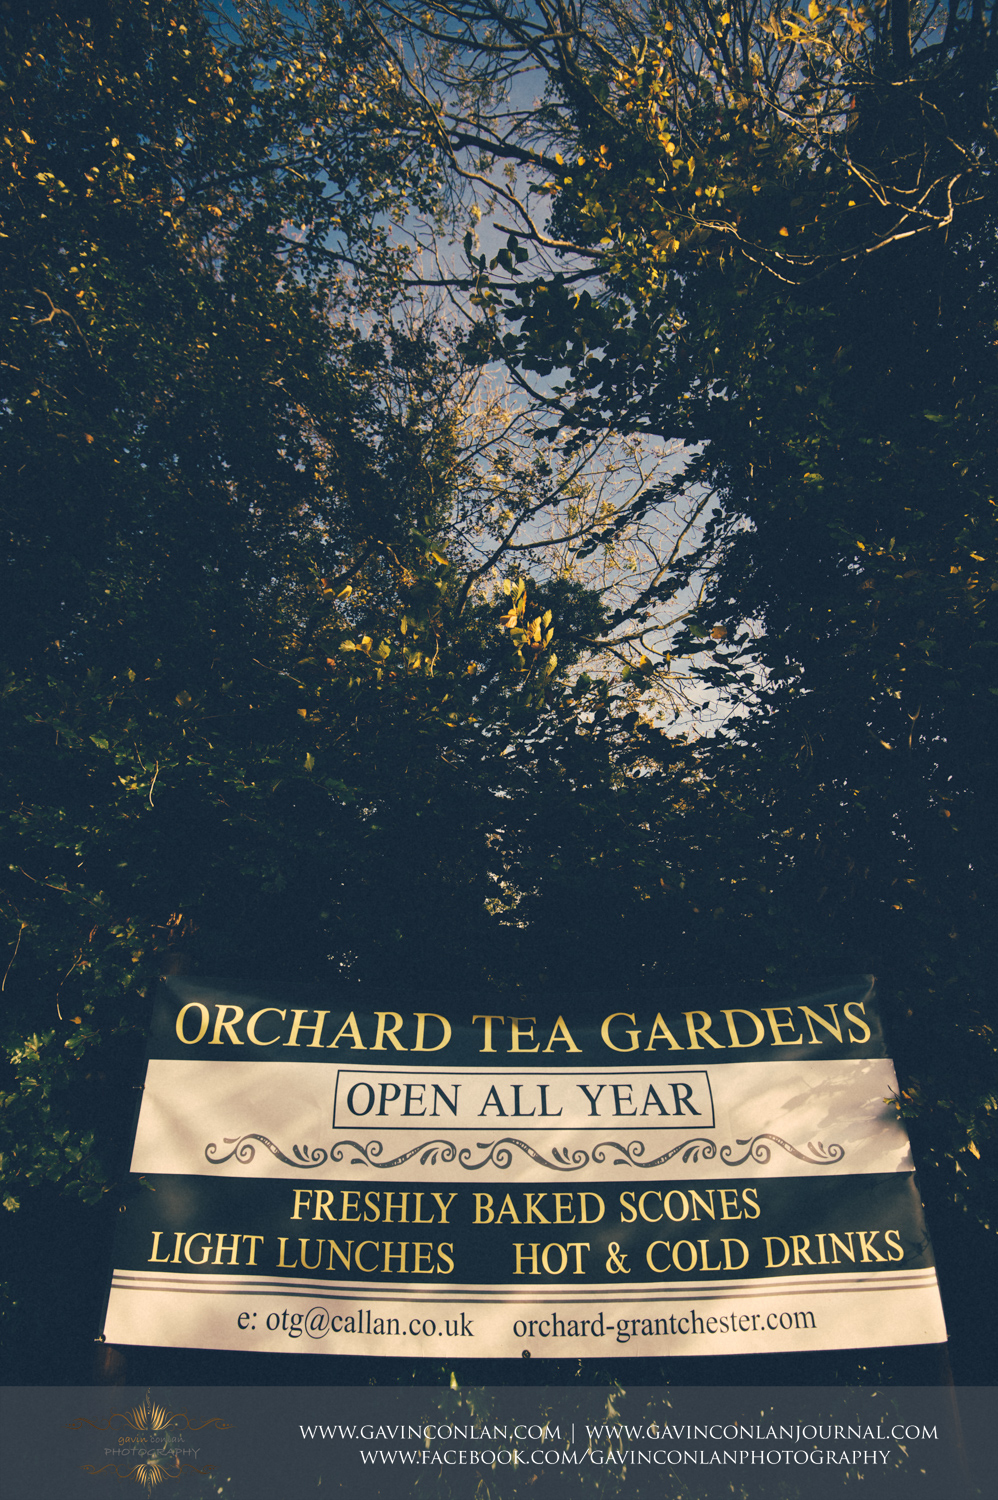 The Orchard tea rooms in Grantchester, Cambridgeshire